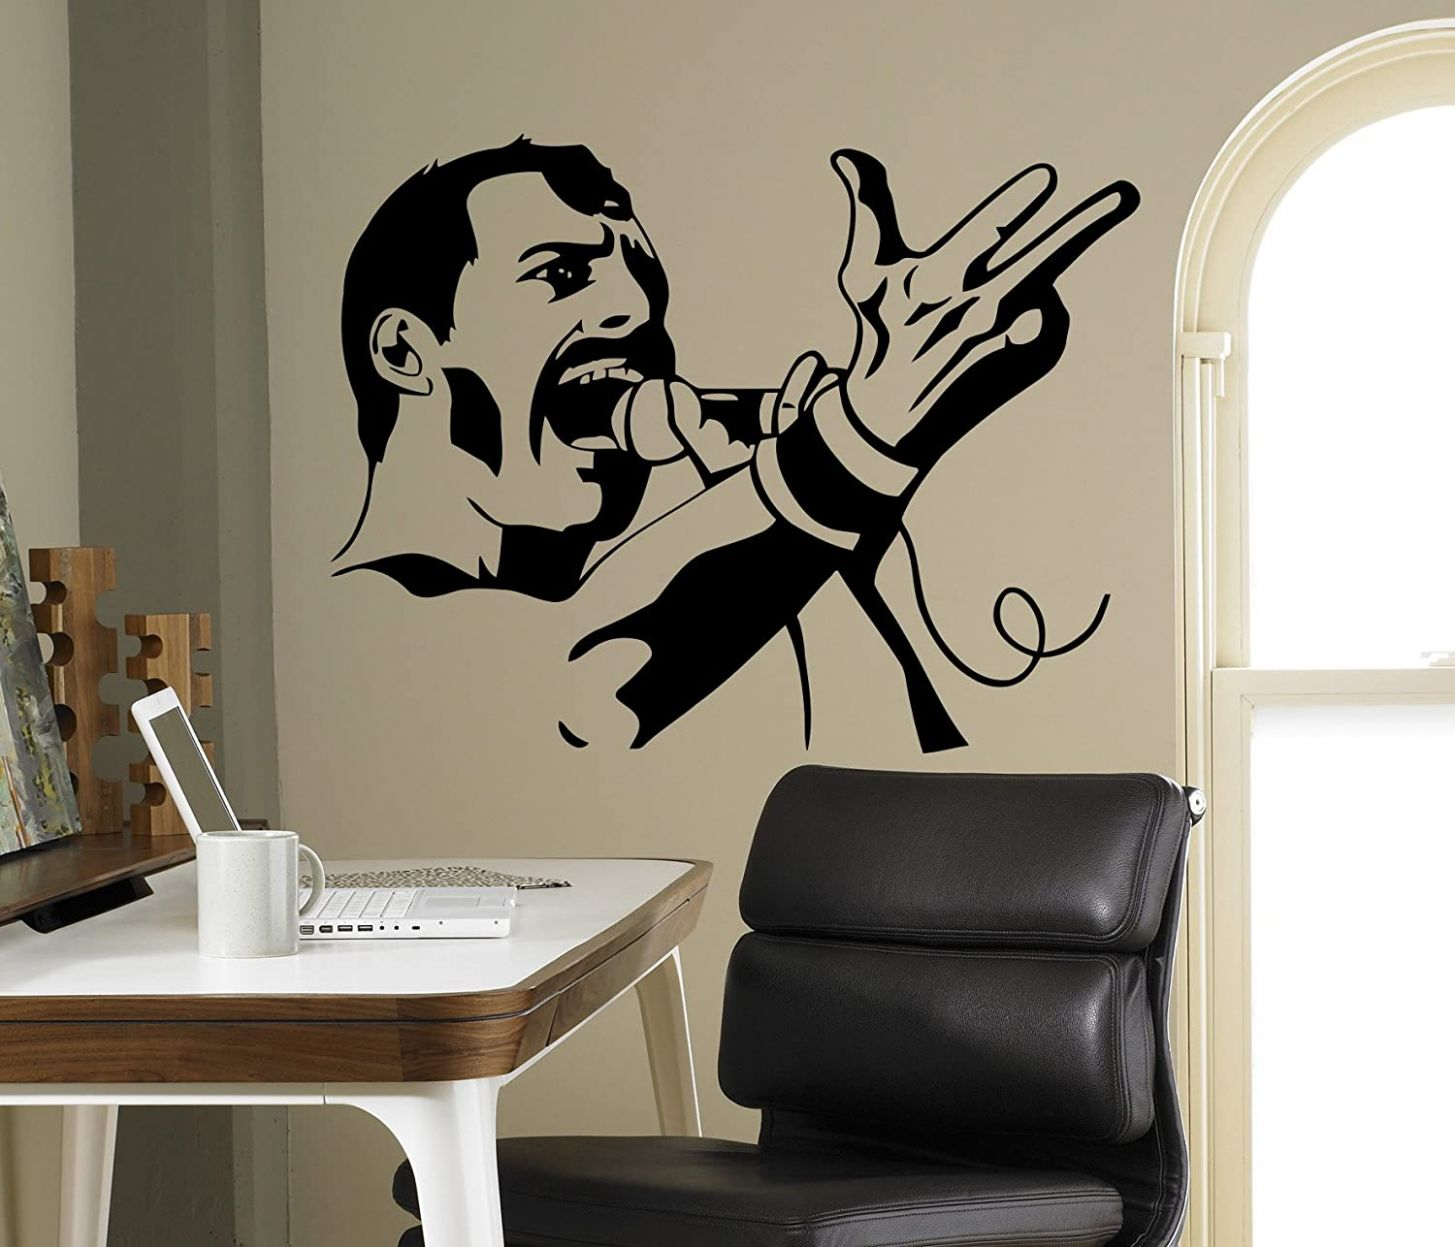 Queen Wall Decal Freddie Mercury Vinyl Sticker Rock Band Home Decor Ideas  Interior Living Room Removable Wall Art 9(fmy) - wall decor vinyl ideas